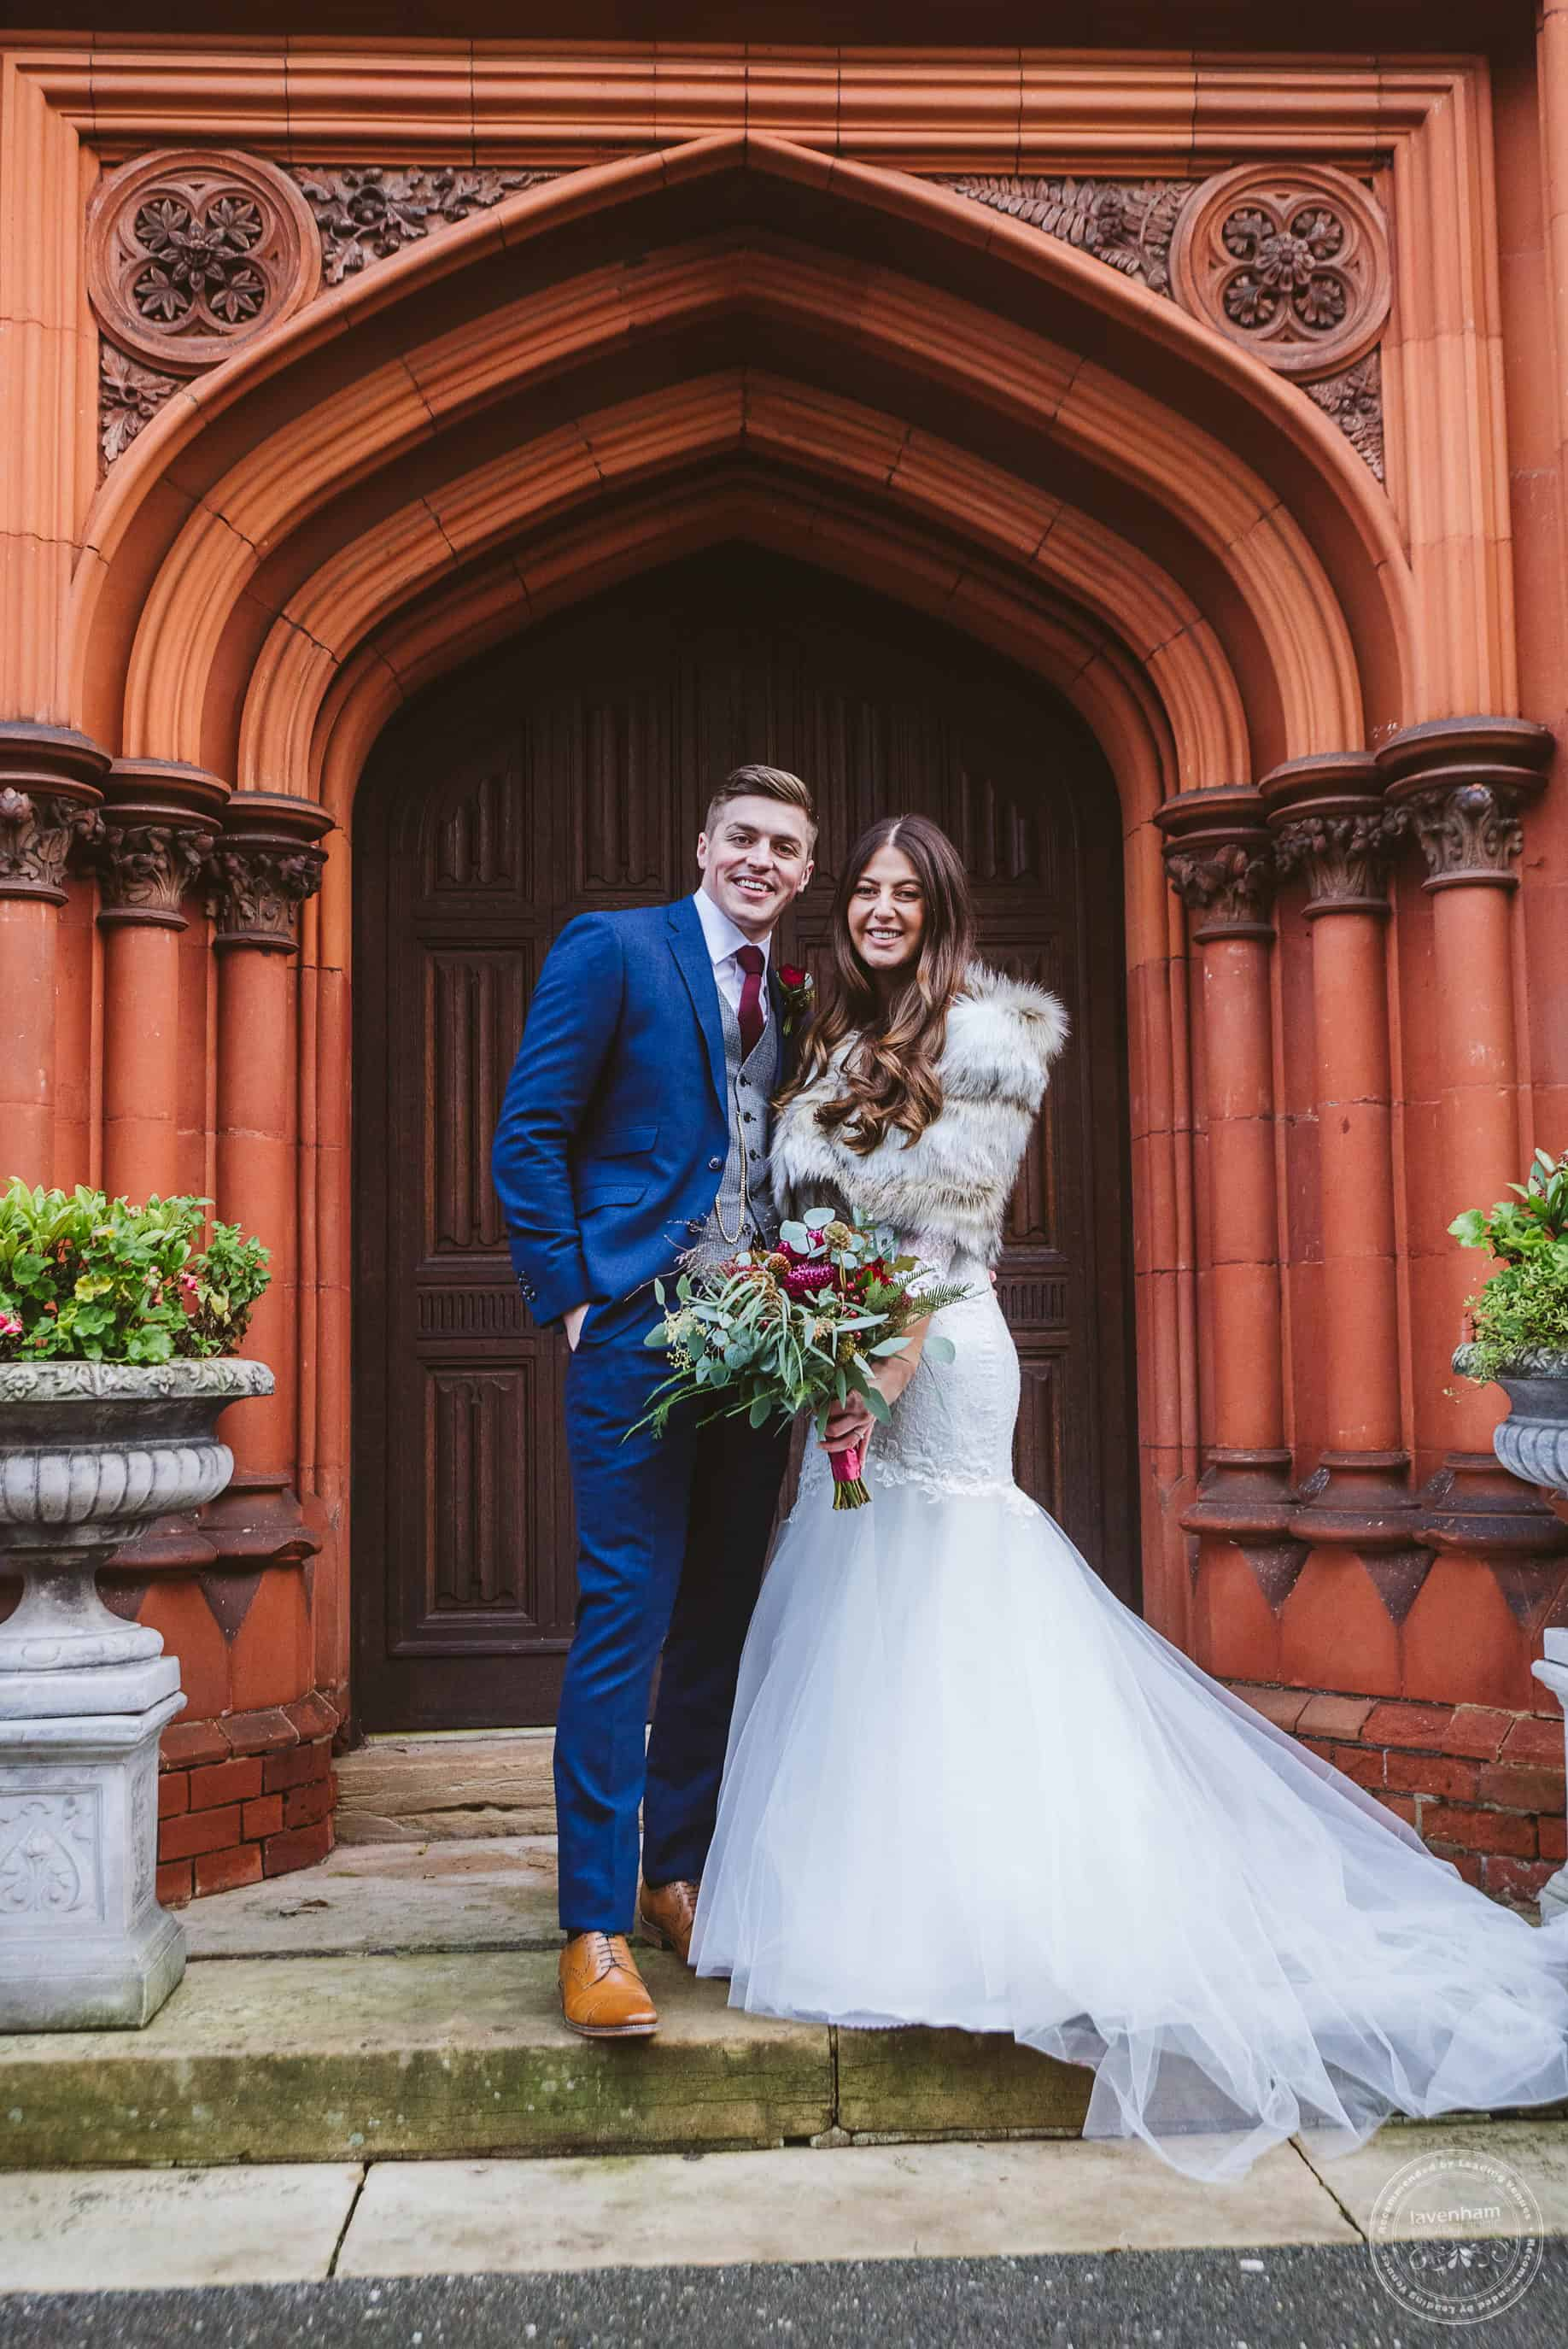 301119 Holmewood Hall Wedding Photographer 133